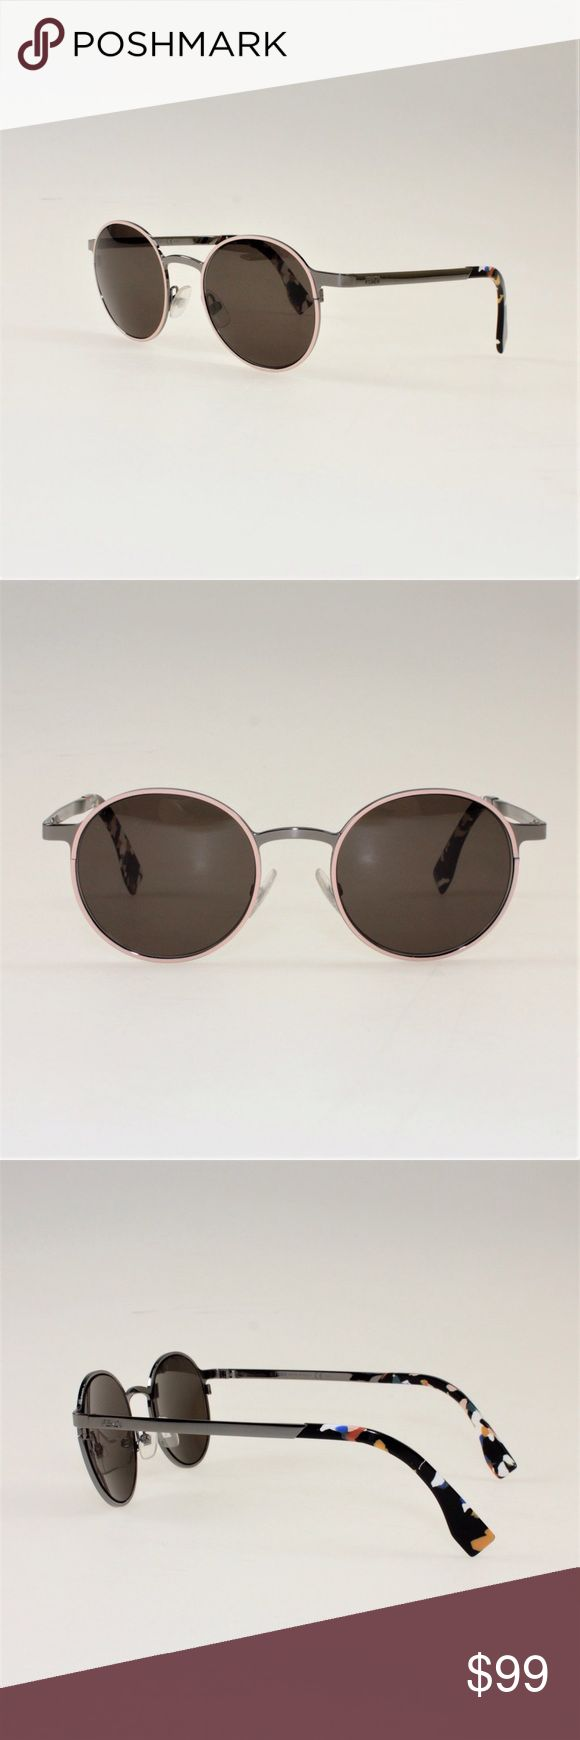 Fendi Round Lense Sunglasses These stunning sunnies come in a fun myriad of colors with peach around the eyes, dark silver frames, and an abstract blend of white, blue, peach and many other colors on the arms. These are 100% authentic Fendi glasses and come in a size 49mm frame. They come with a carrying case, cleaning cloth, and authentication card. #50KDWS Fendi Accessories Sunglasses